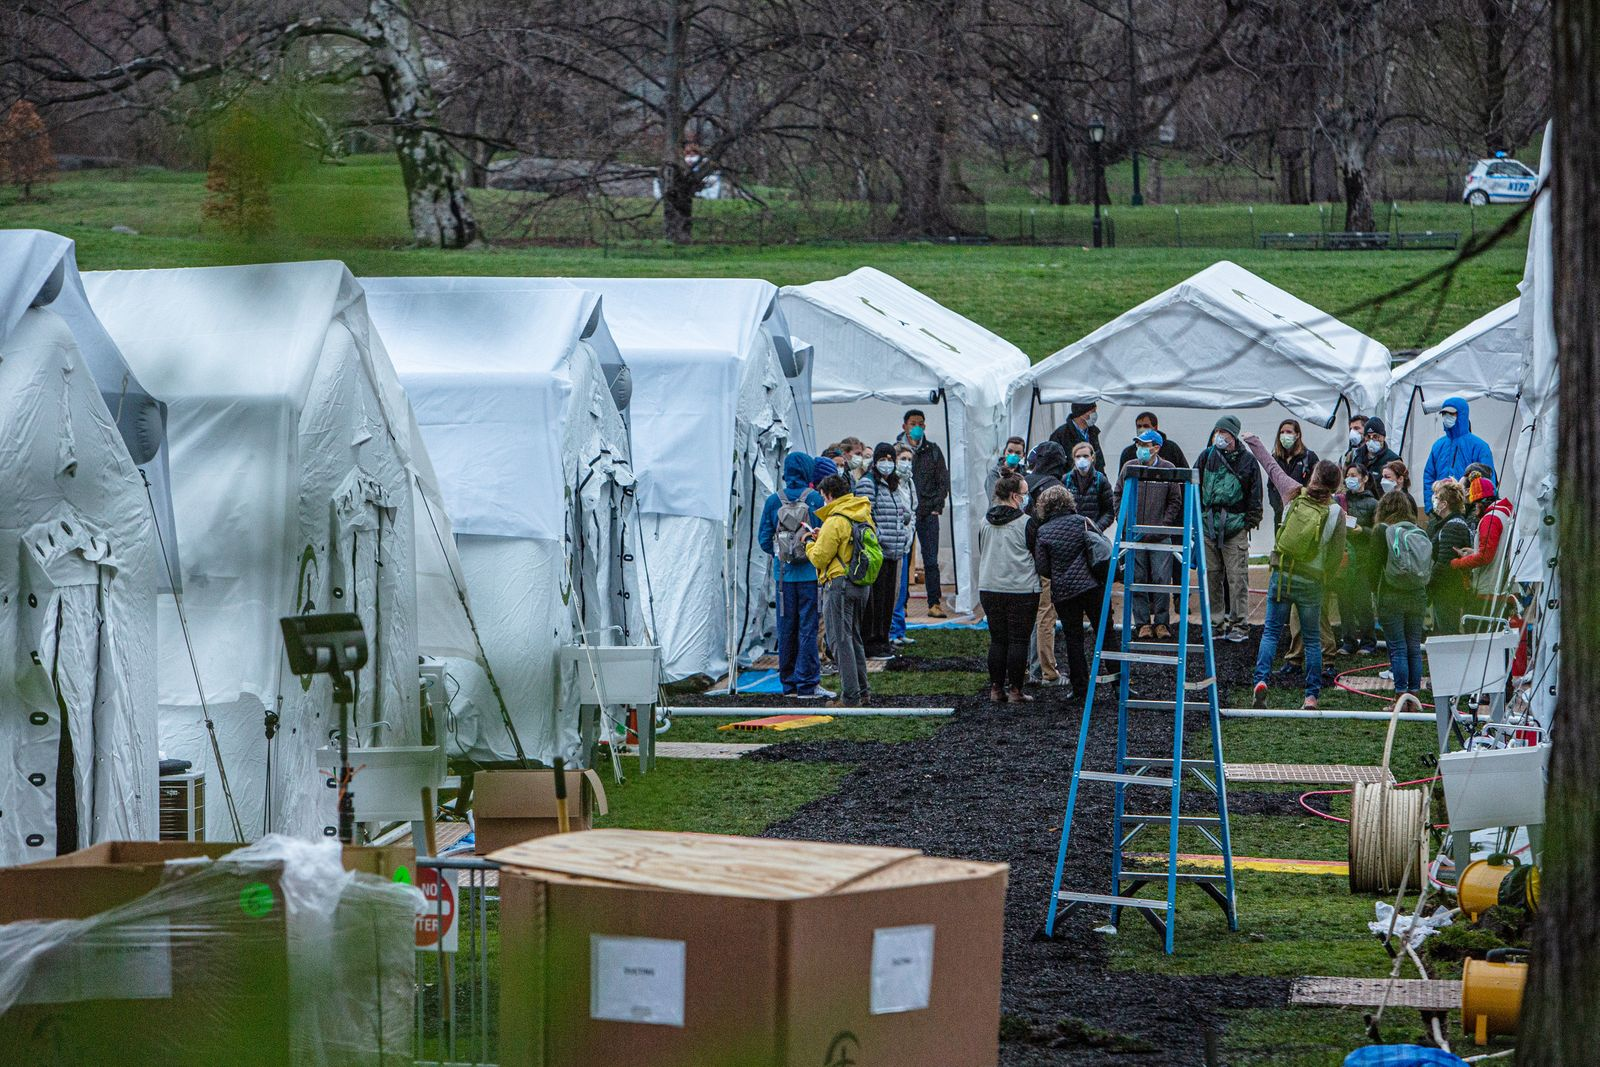 Triage tents in Central Park are setup near New York's Mount Sinai hospital, Tuesday, March 31, 2020, in an effort to better serve people in the wake of the coronavirus. (Juan Arredondo/The New York Times)